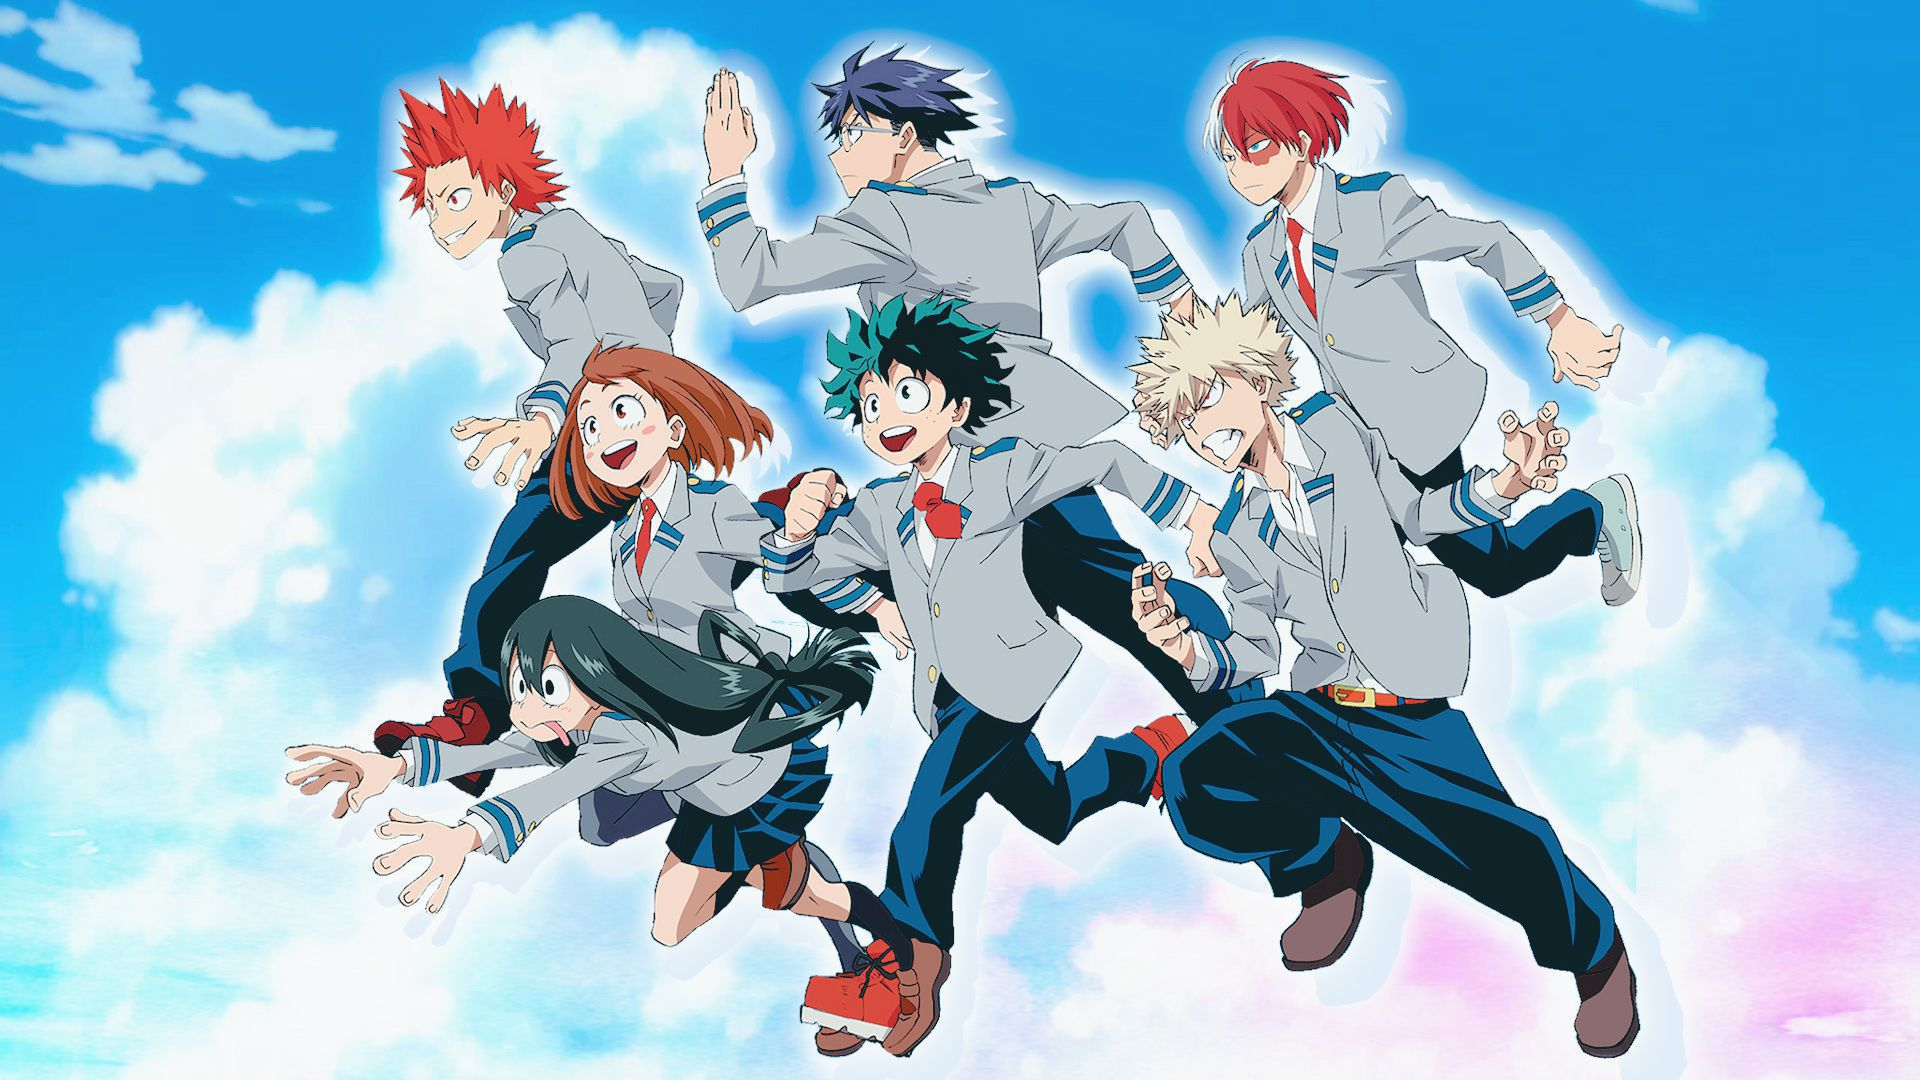 Hd My Hero Academia Wallpaper Posted By Ryan Anderson